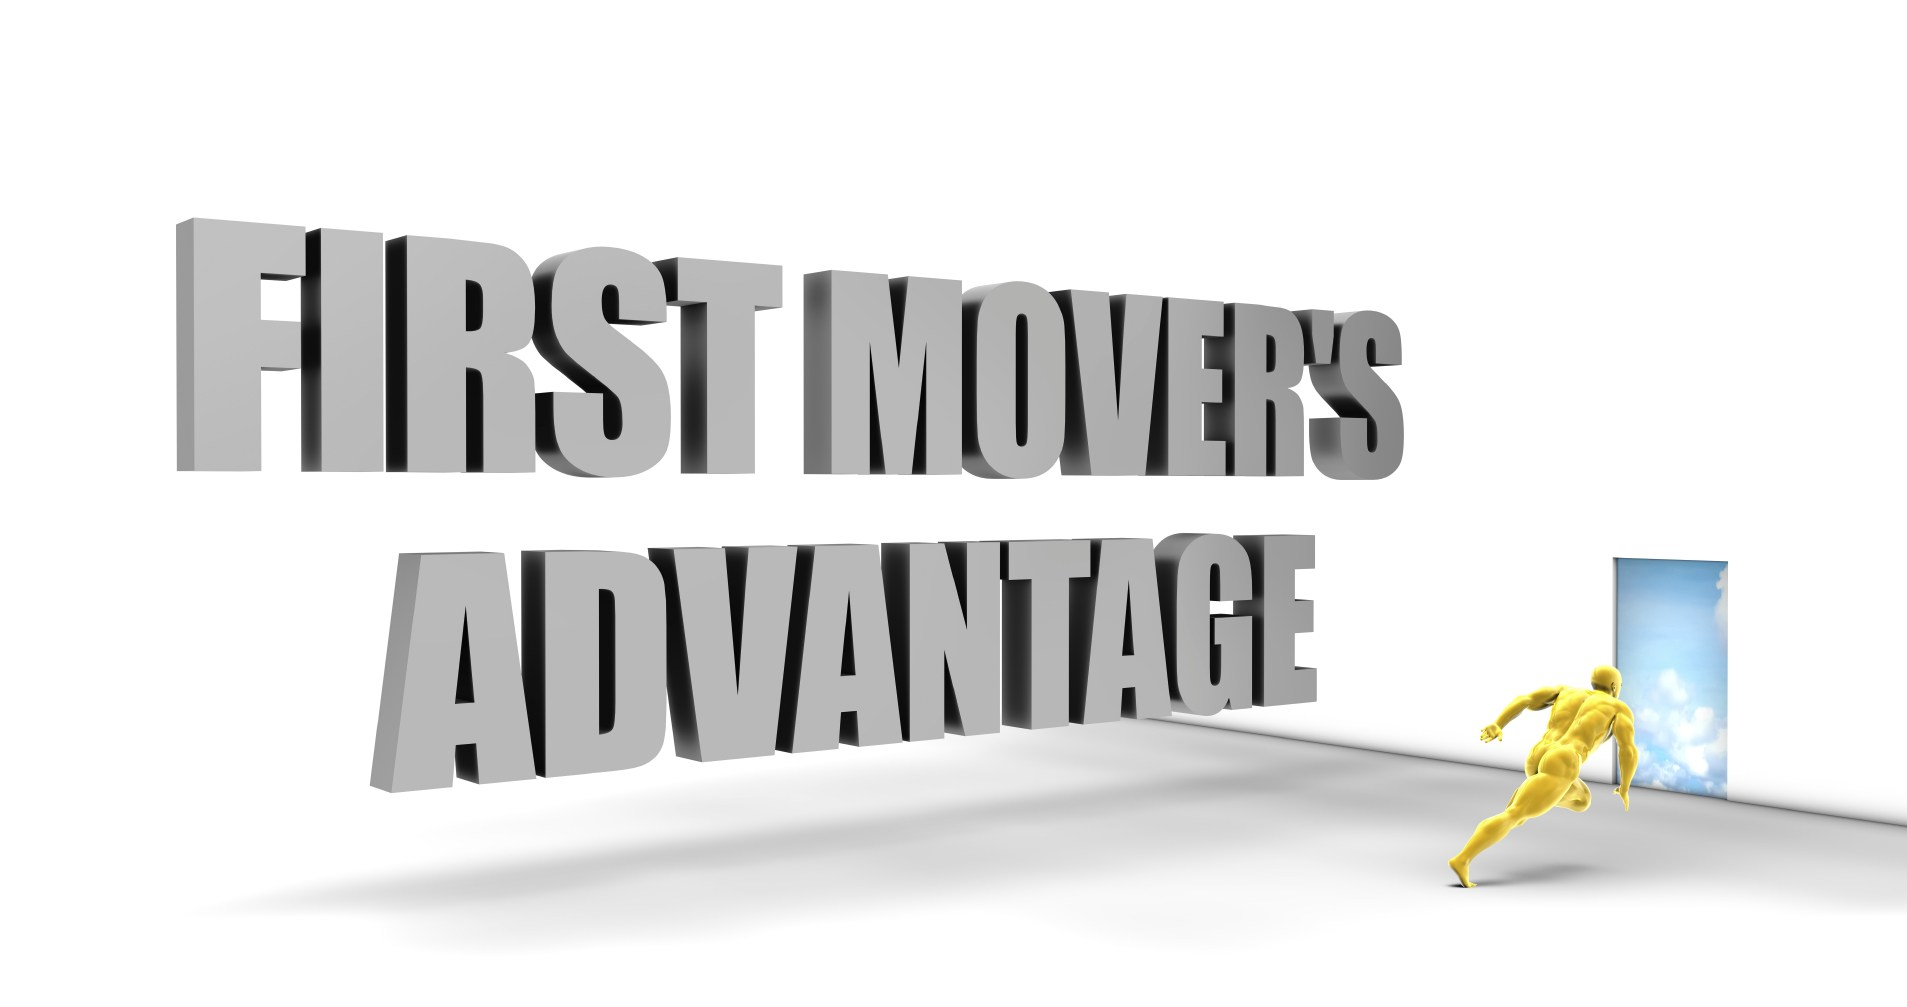 The art of gaining First Mover Advantage